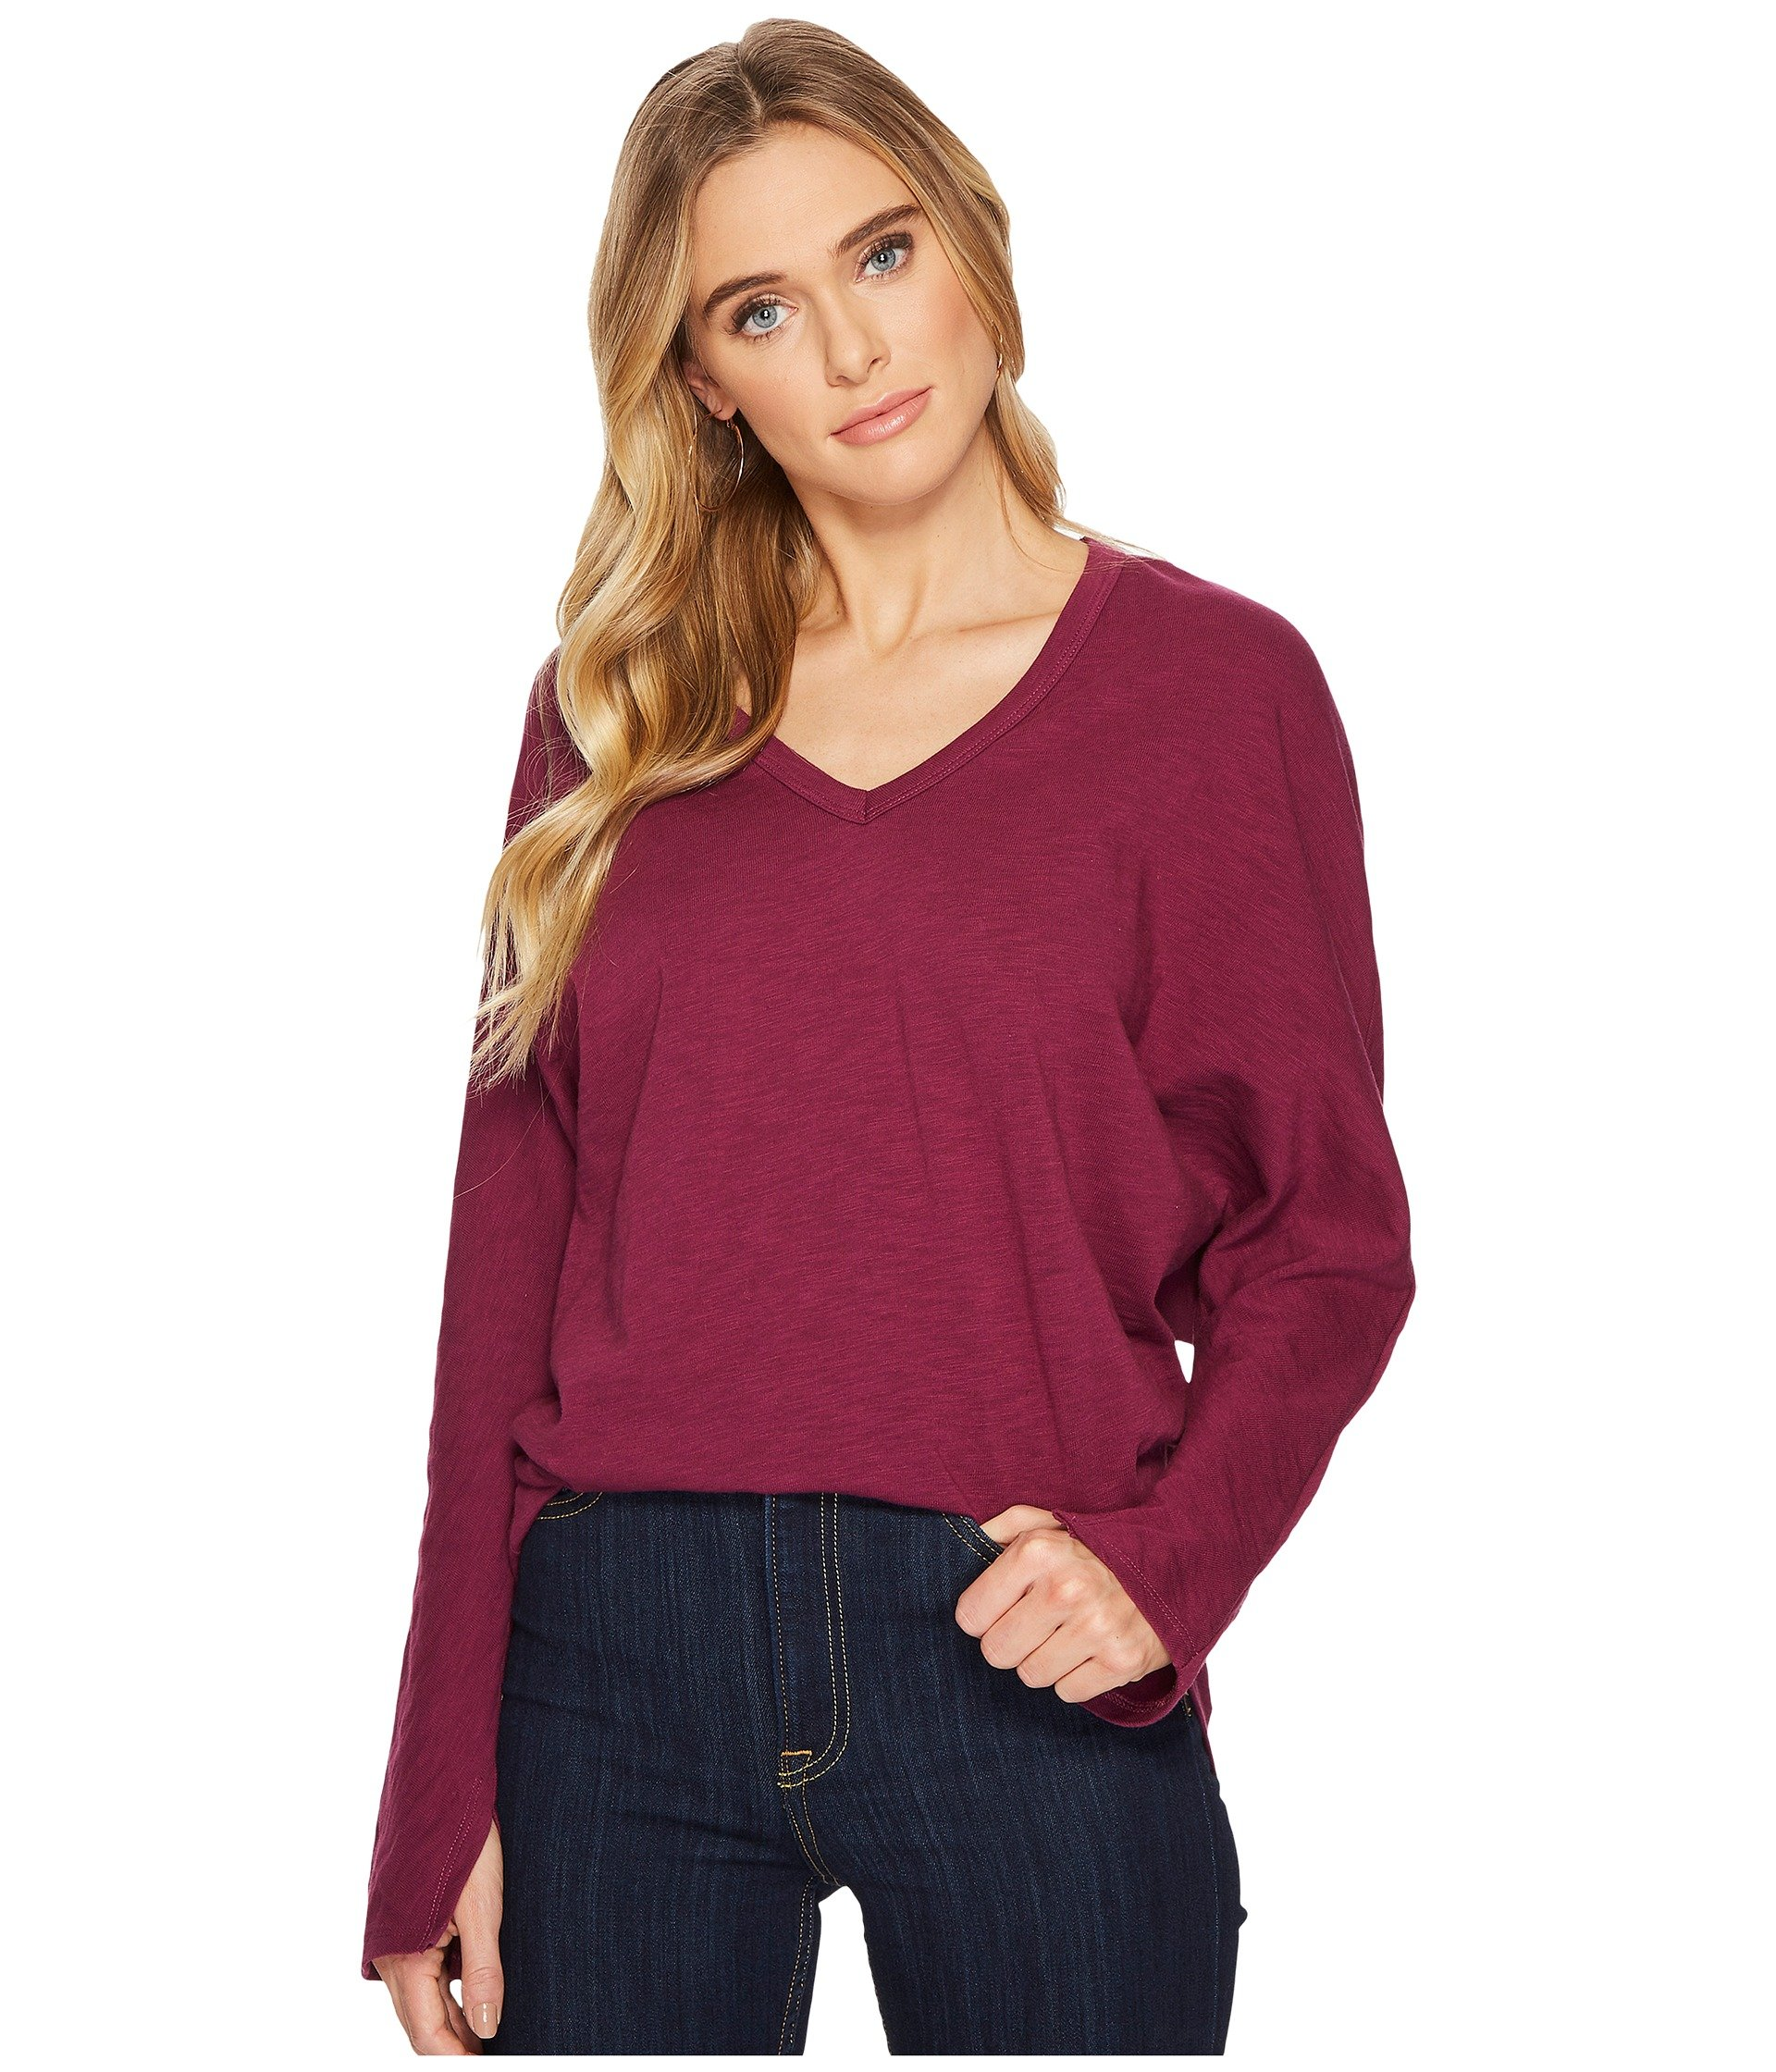 HEATHER Eartha Pullover, Berry